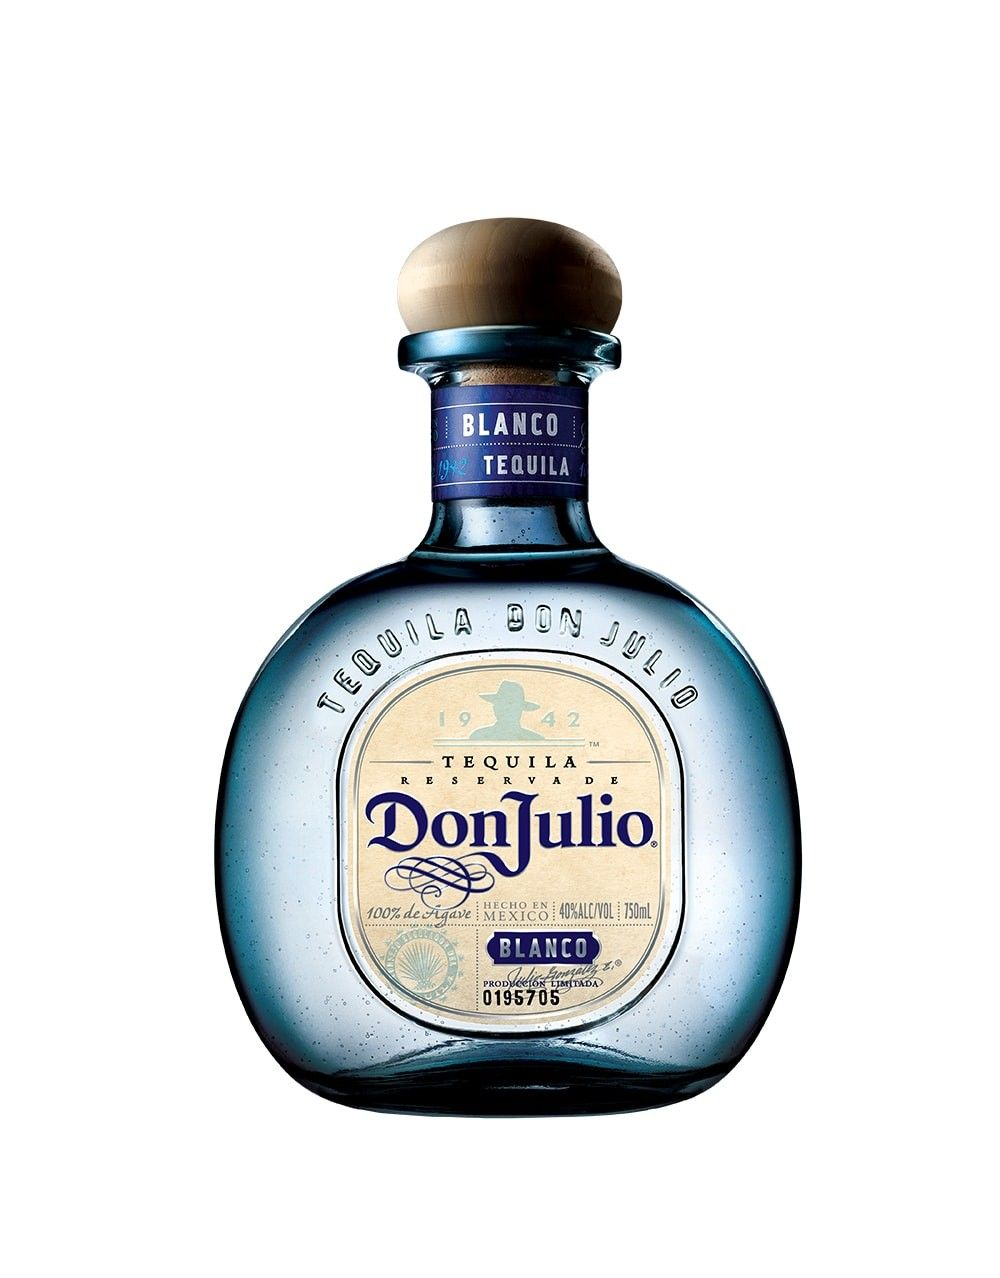 Don Julio Blanco Tequila  Buy Online or Send as a Gift